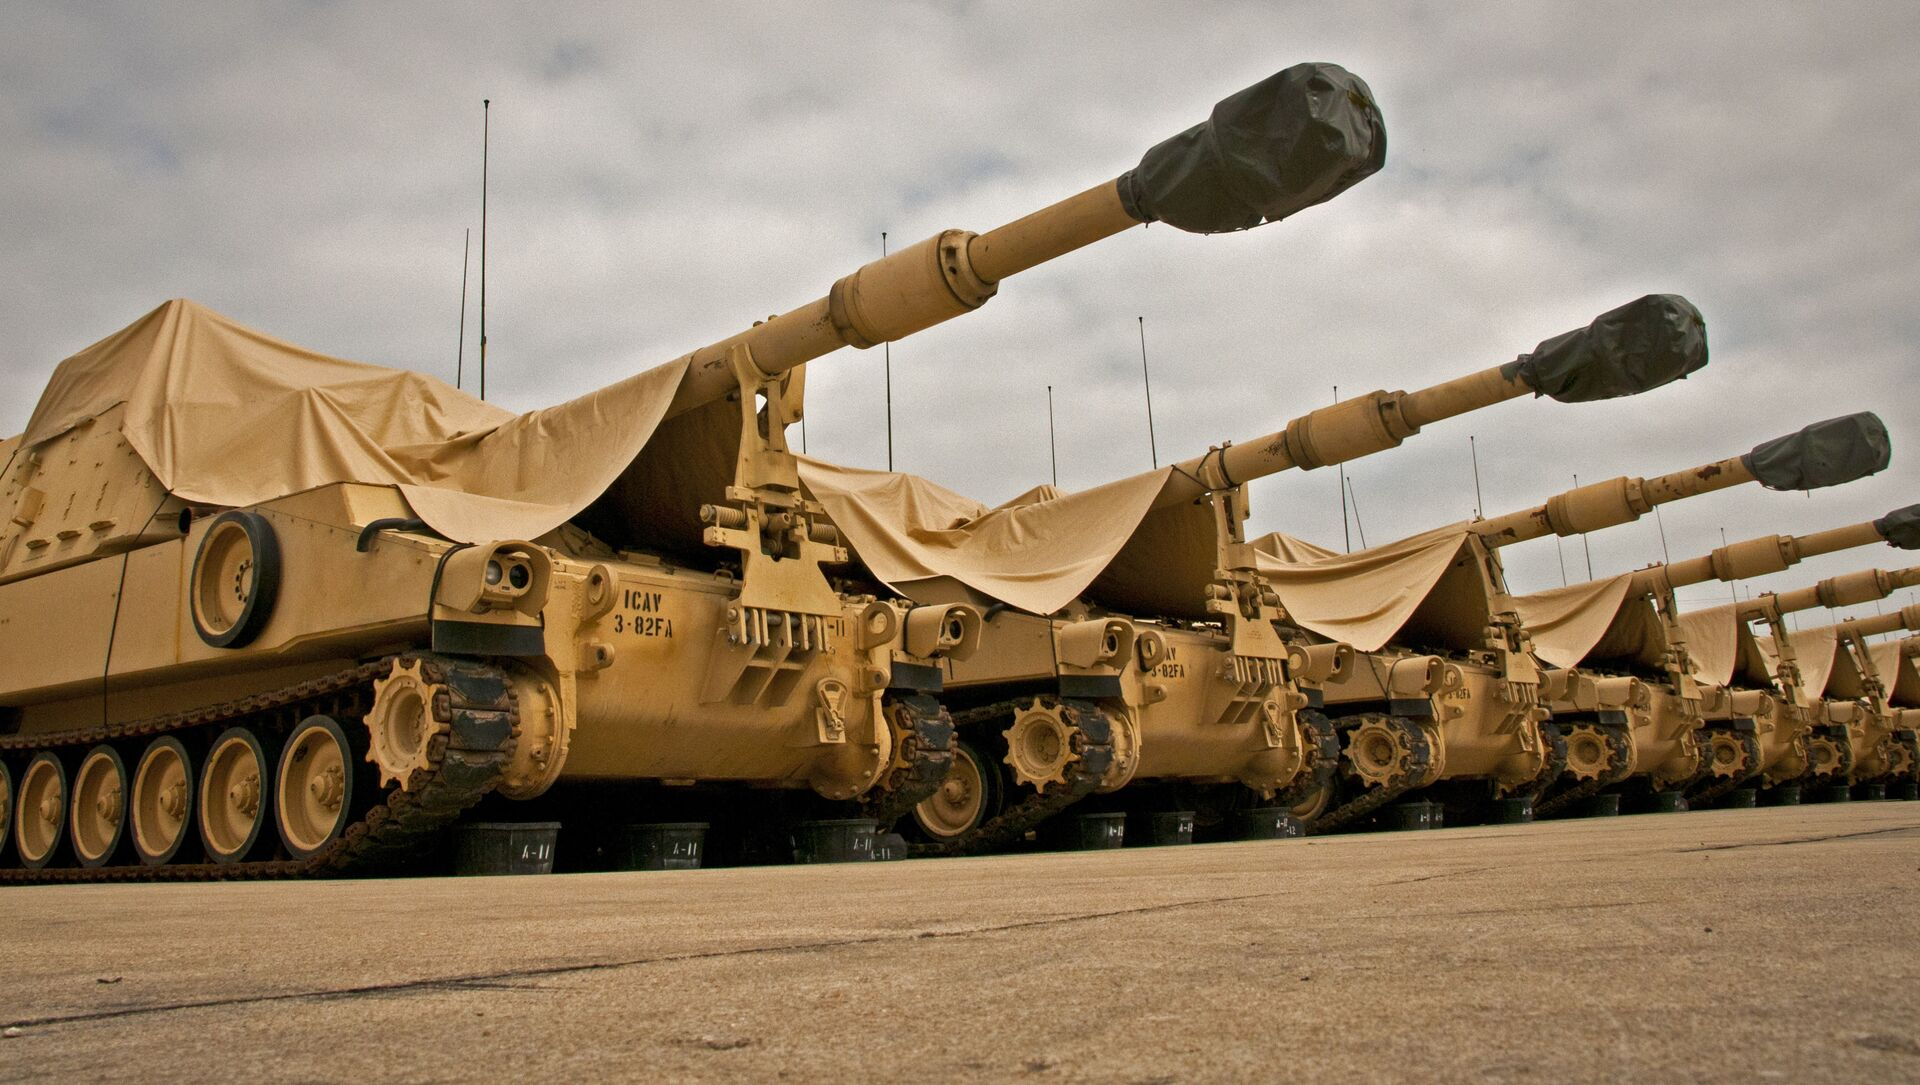 M109A6 Paladin howitzers are seen under a cloudy sky at the 3rd Battalion, 82nd Field Artillery Regiment motor pool at Fort Hood, Texas, March 22, 2013.  - Sputnik International, 1920, 06.08.2021